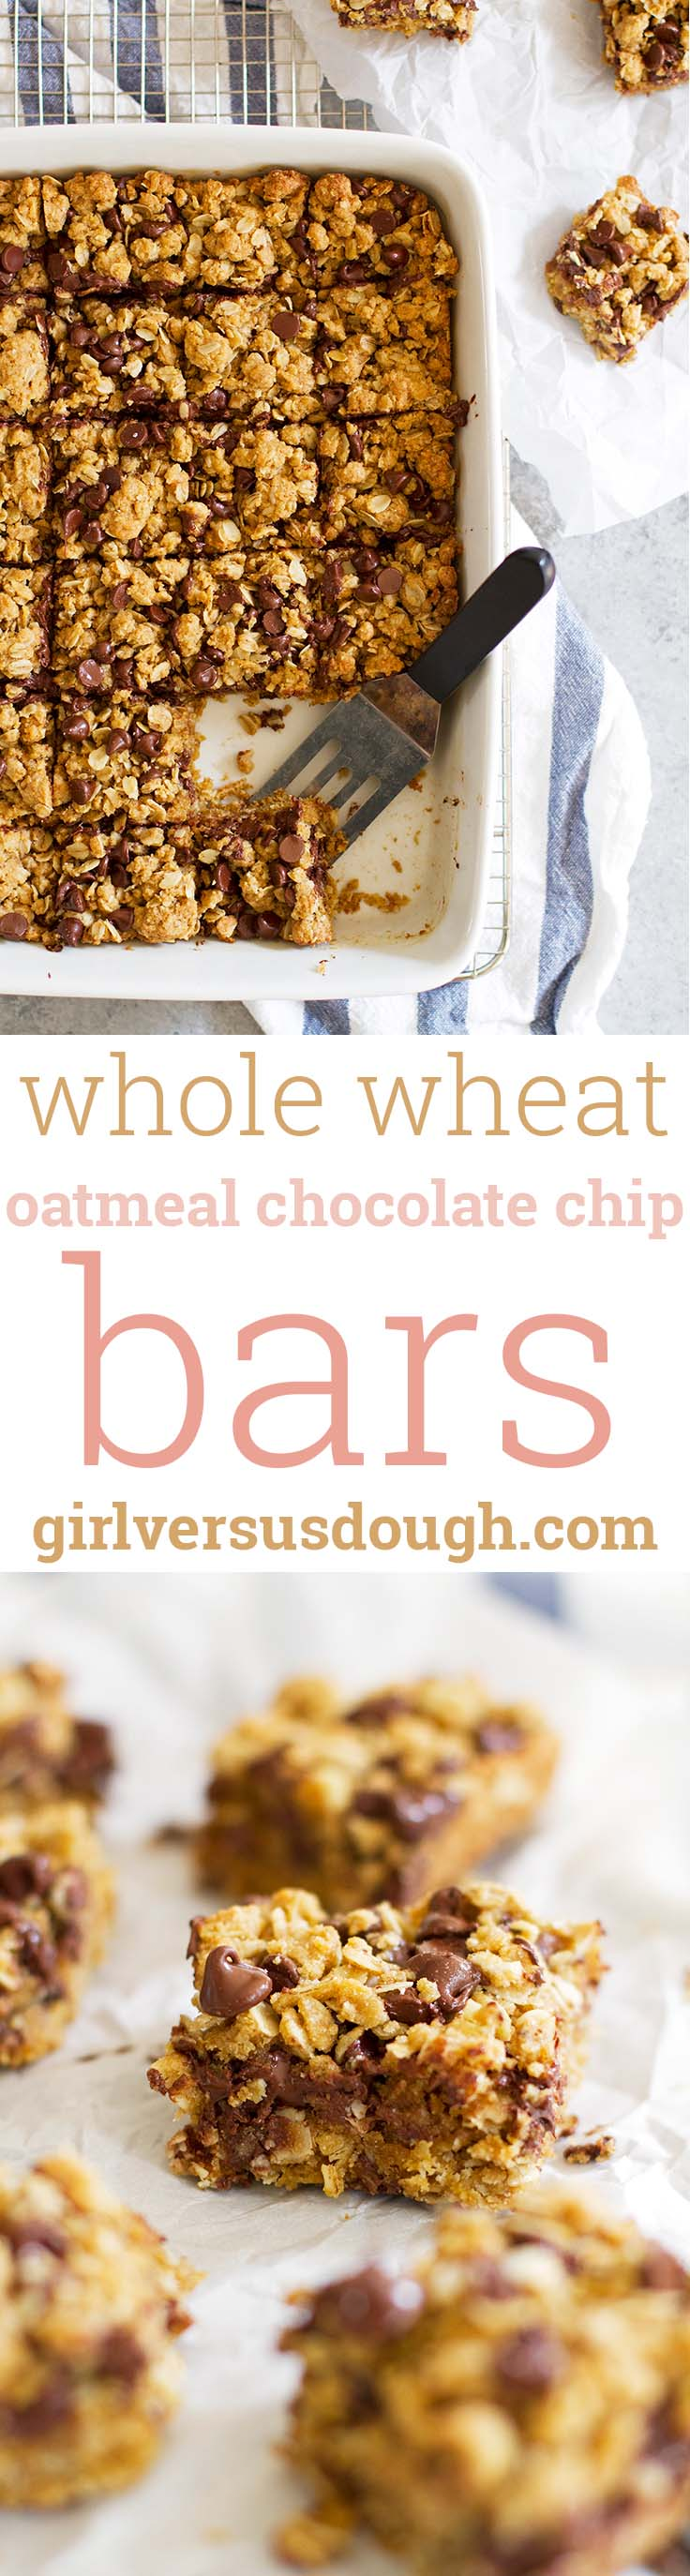 Oatmeal White Chocolate Cookie Dough Bars Recipes — Dishmaps